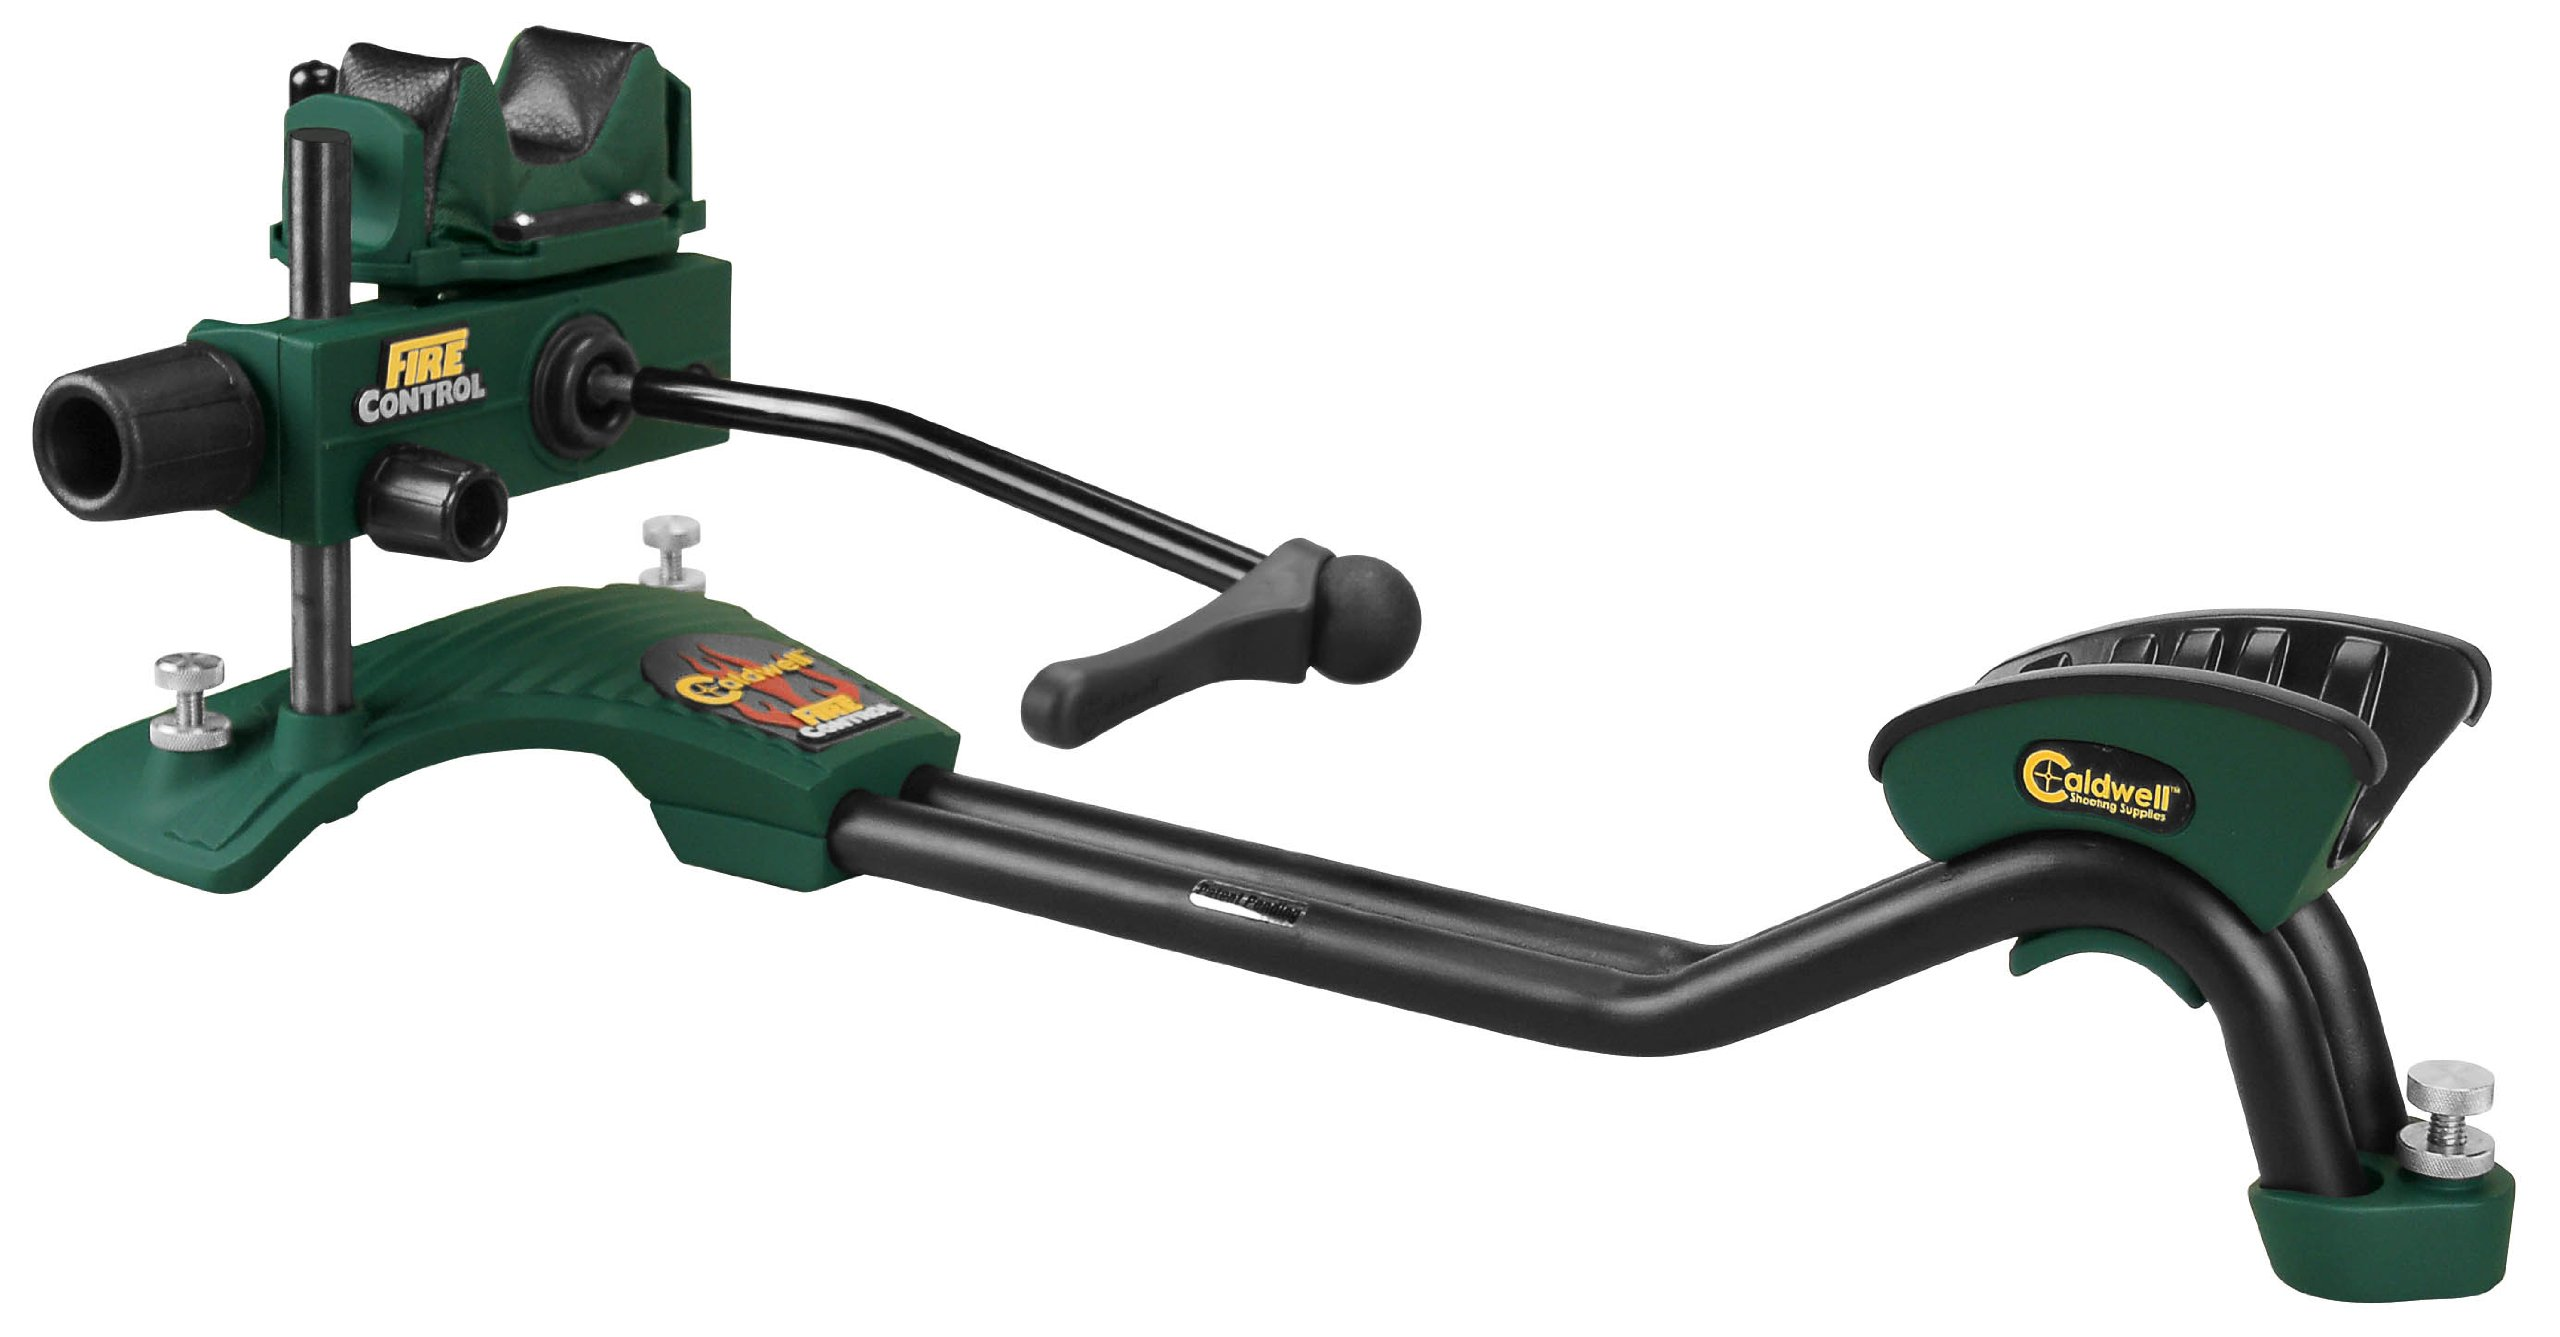 Caldwell Fire Control Full Length Rest Adjustable Ambidextrous Rifle Shooting Rest for Outdoor Range by Caldwell